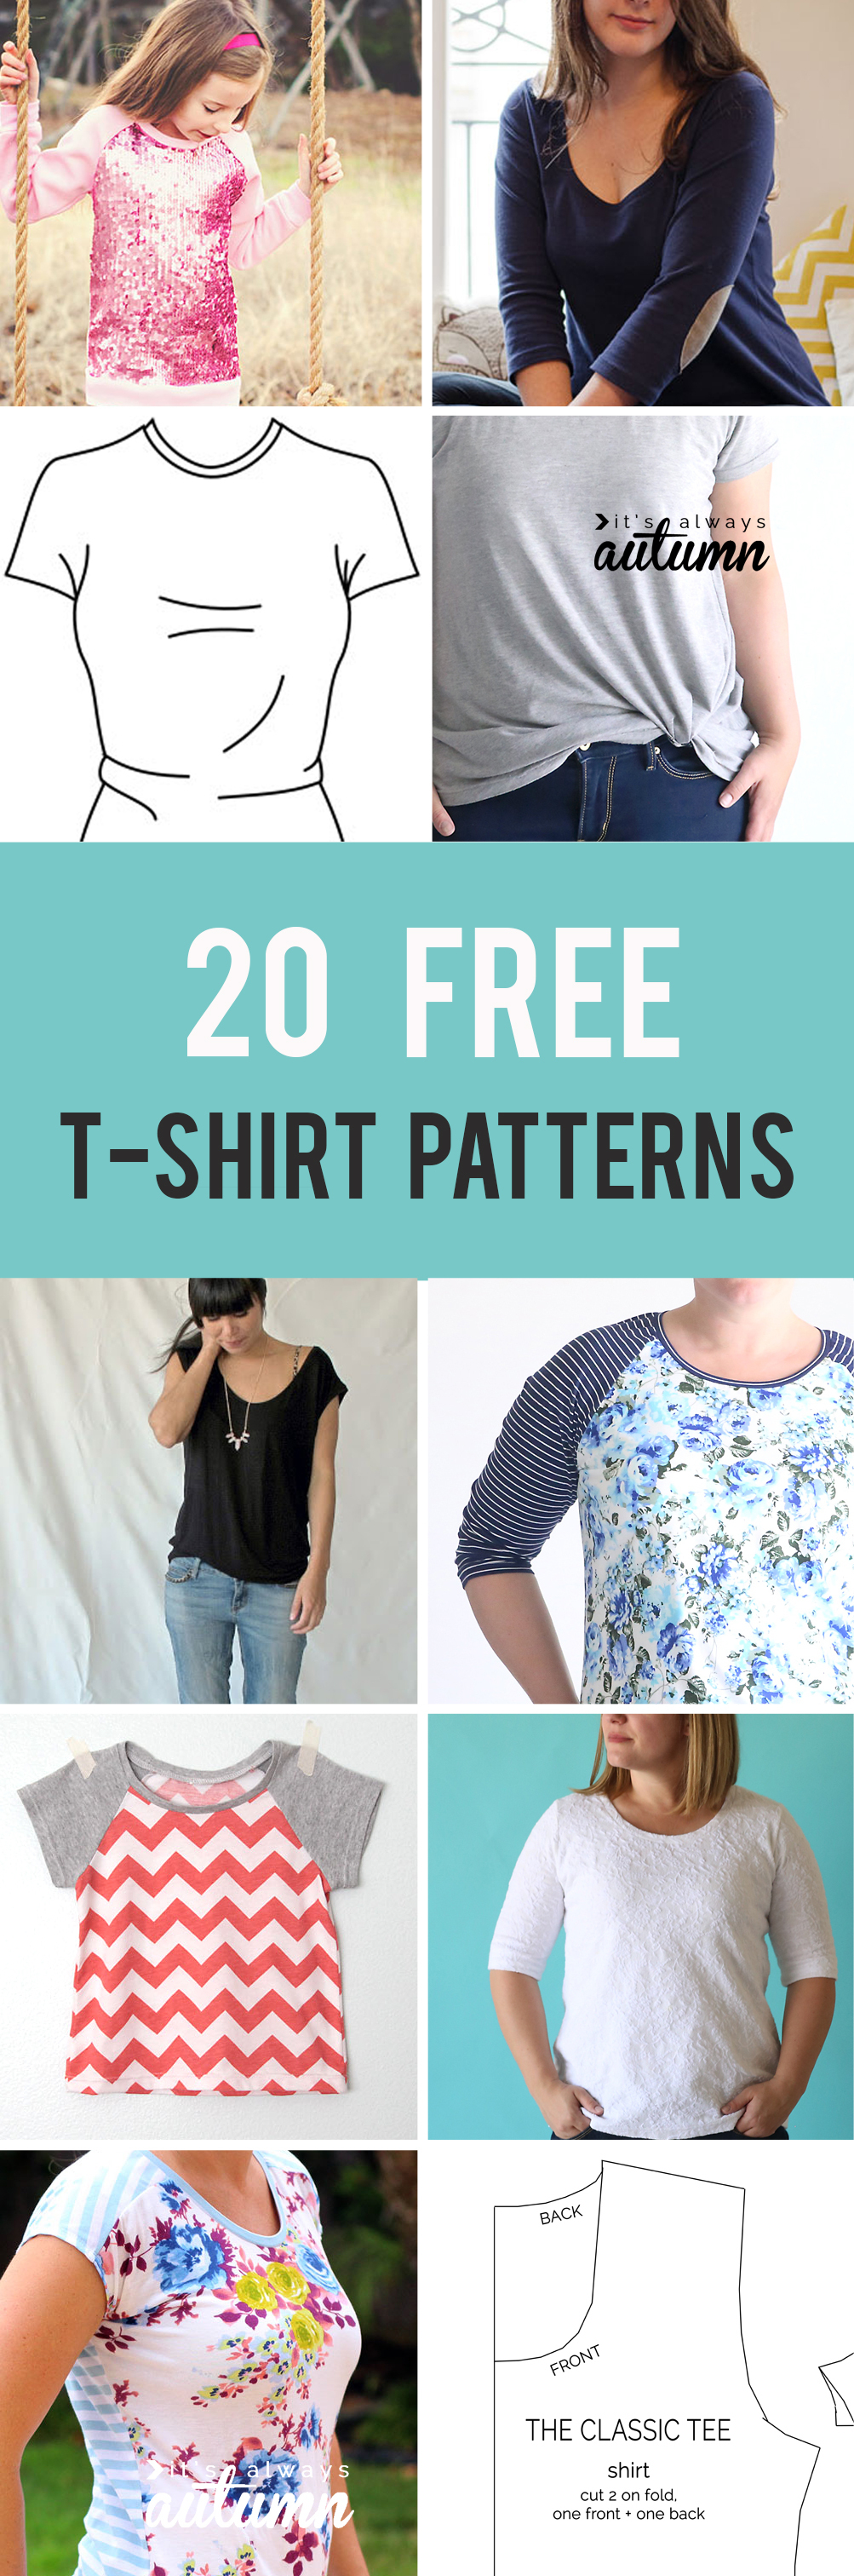 20 Free T-Shirt Patterns You Can Print + Sew At Home - It's Always - Free Printable Blouse Sewing Patterns